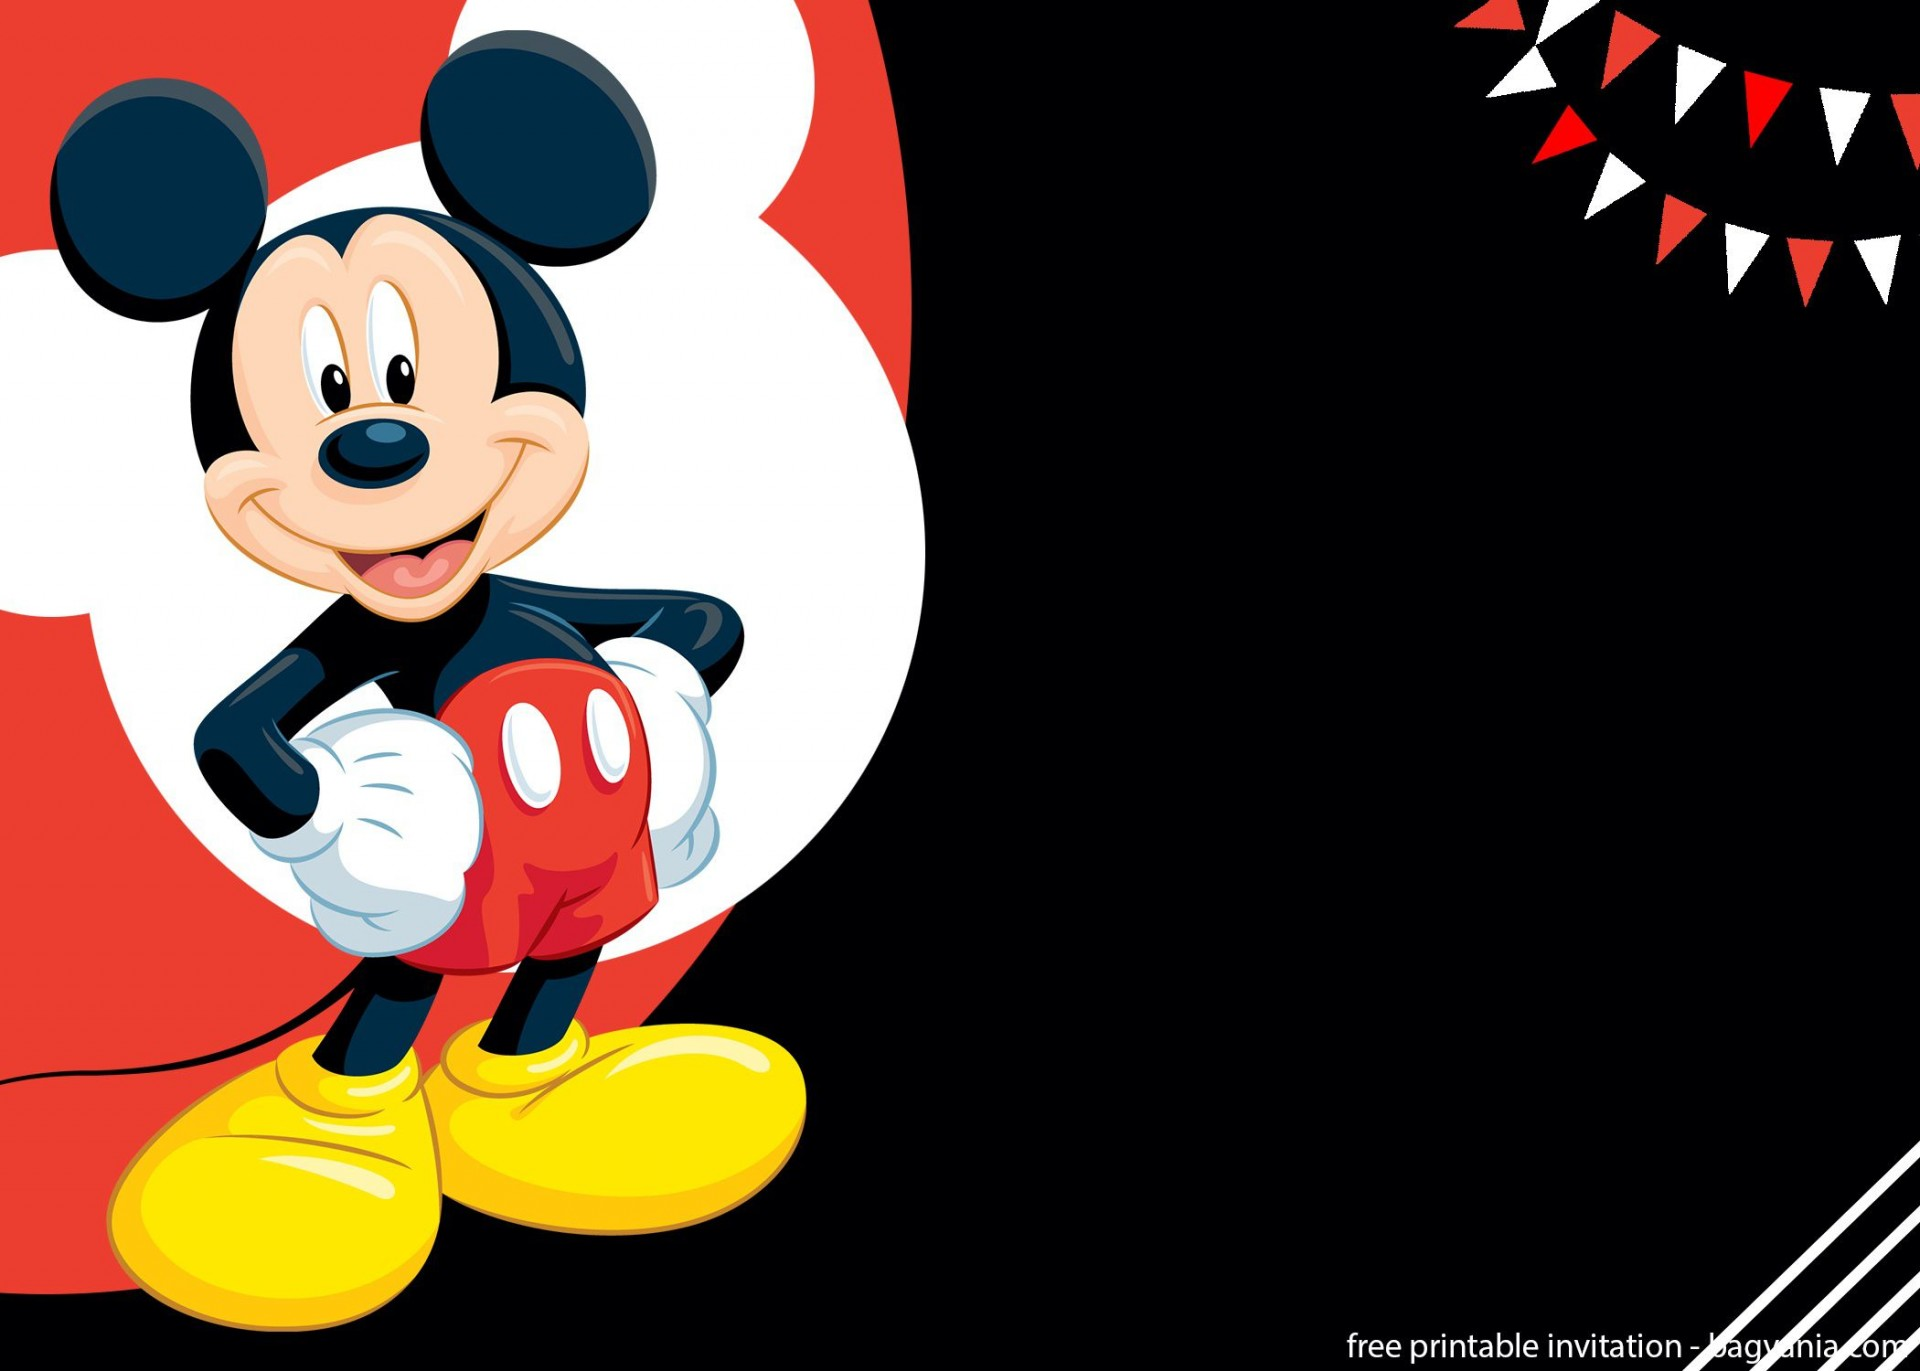 009 Unique Mickey Mouse Invitation Template Image  Templates Clubhouse Birthday Free 1st Download1920